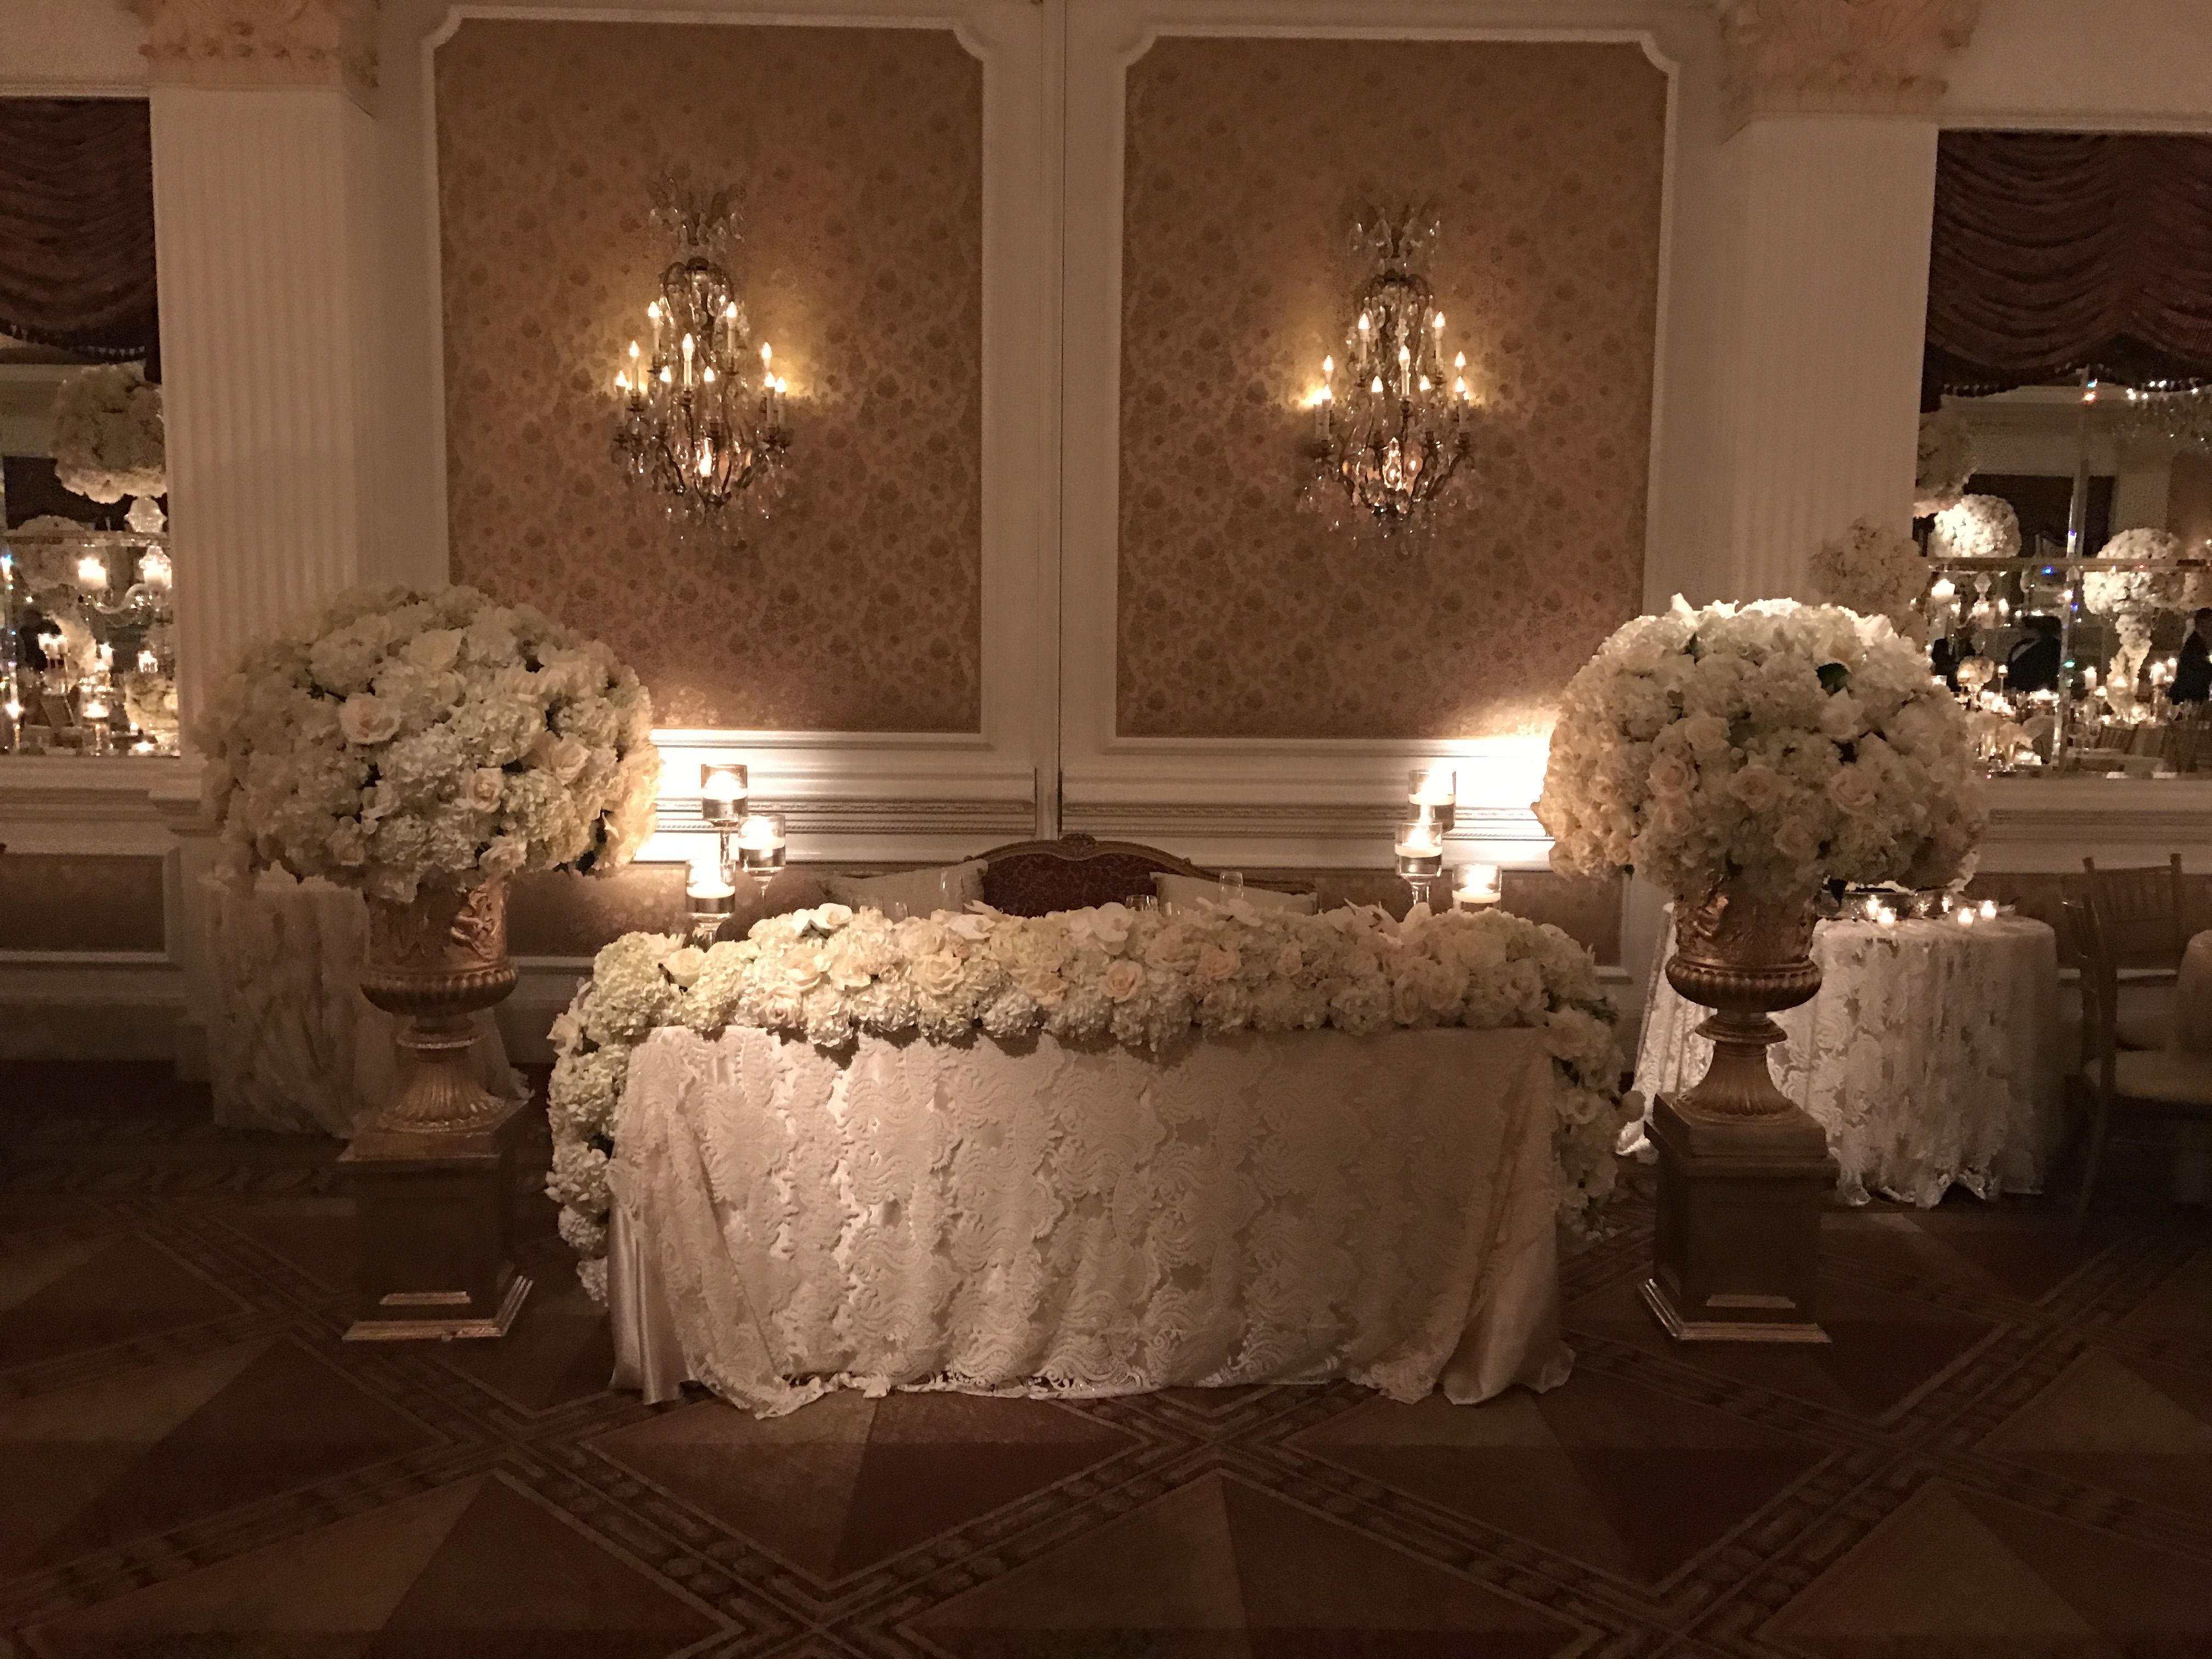 Orange traditional wedding decor  This very traditional style sweetheart table looked amazing at the